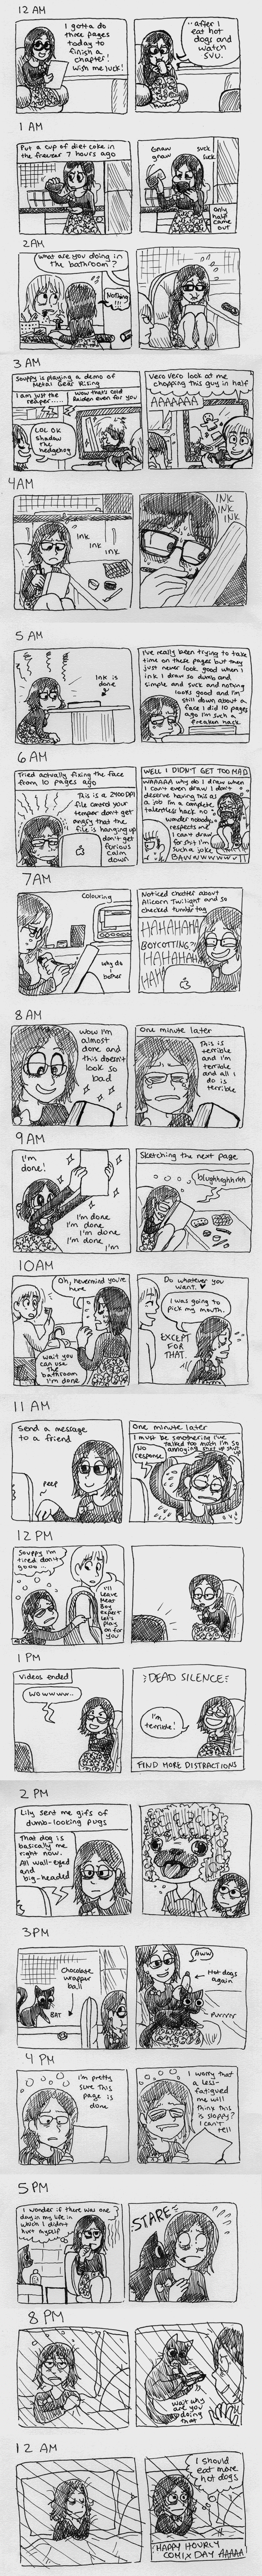 Hourly comics for 2013